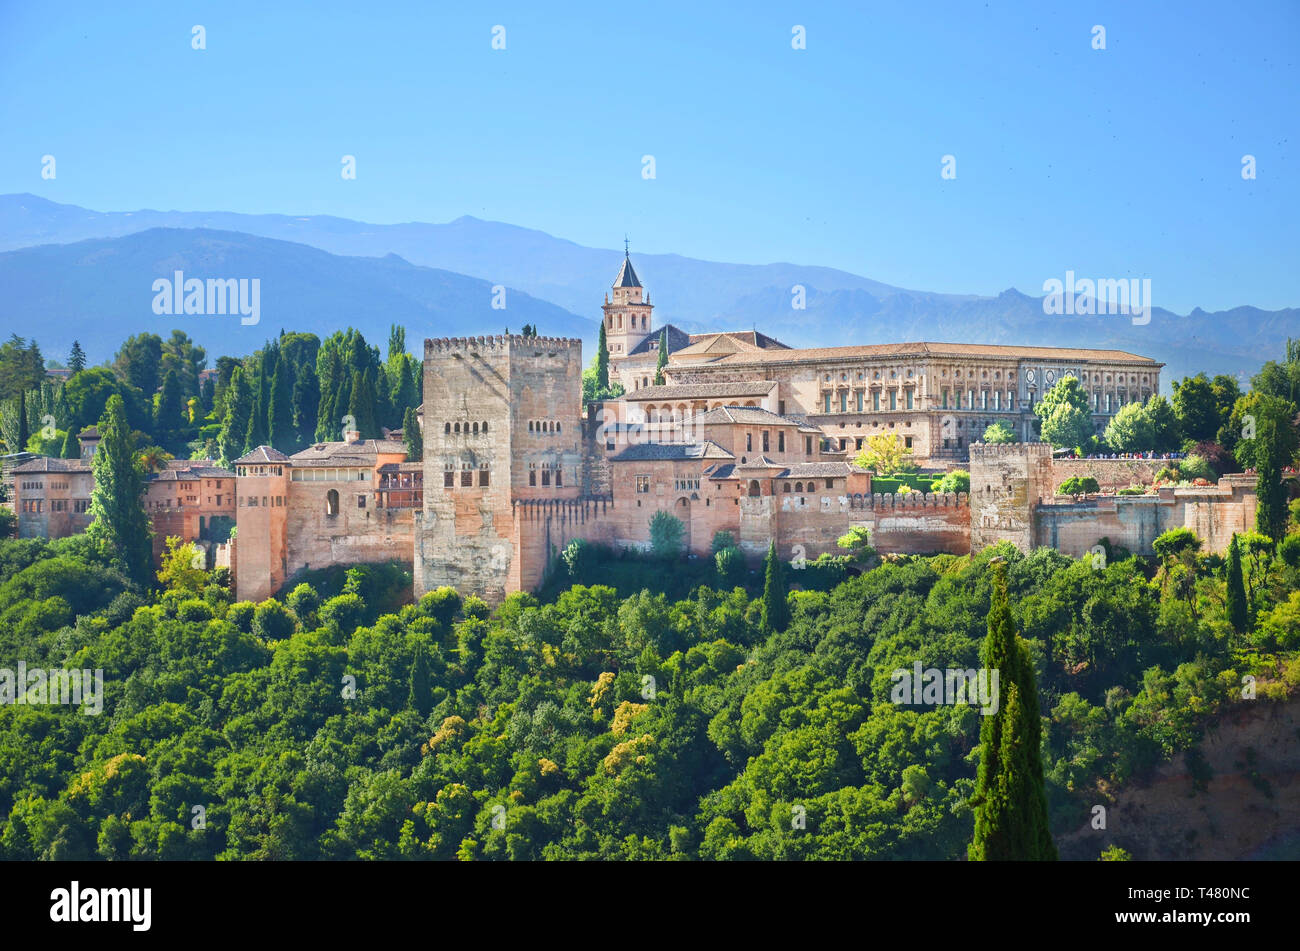 Amazing view of Alhambra palace complex in Granada, Spain taken on a sunny day. UNESCO World Heritage Site, significant sample of Islamic architecture Stock Photo